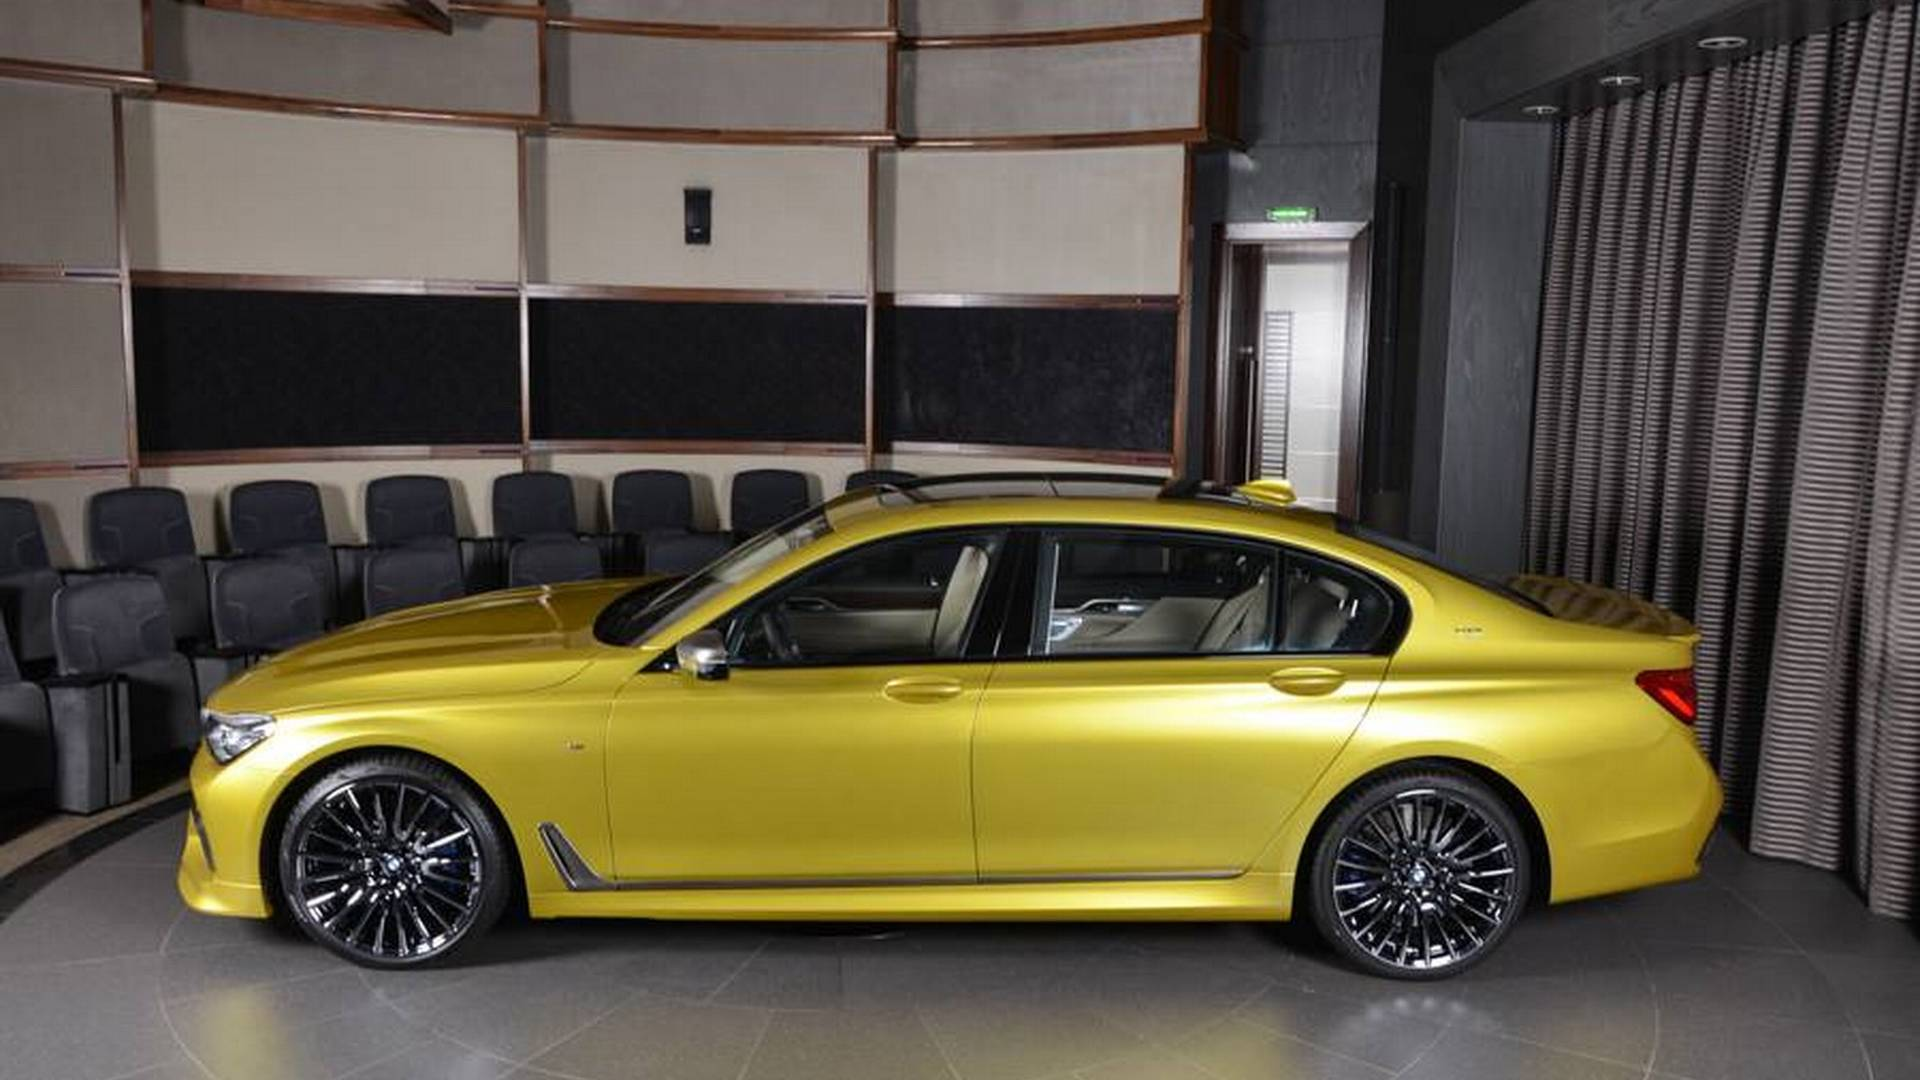 BMW_M60Li_Austin_Yellow_07